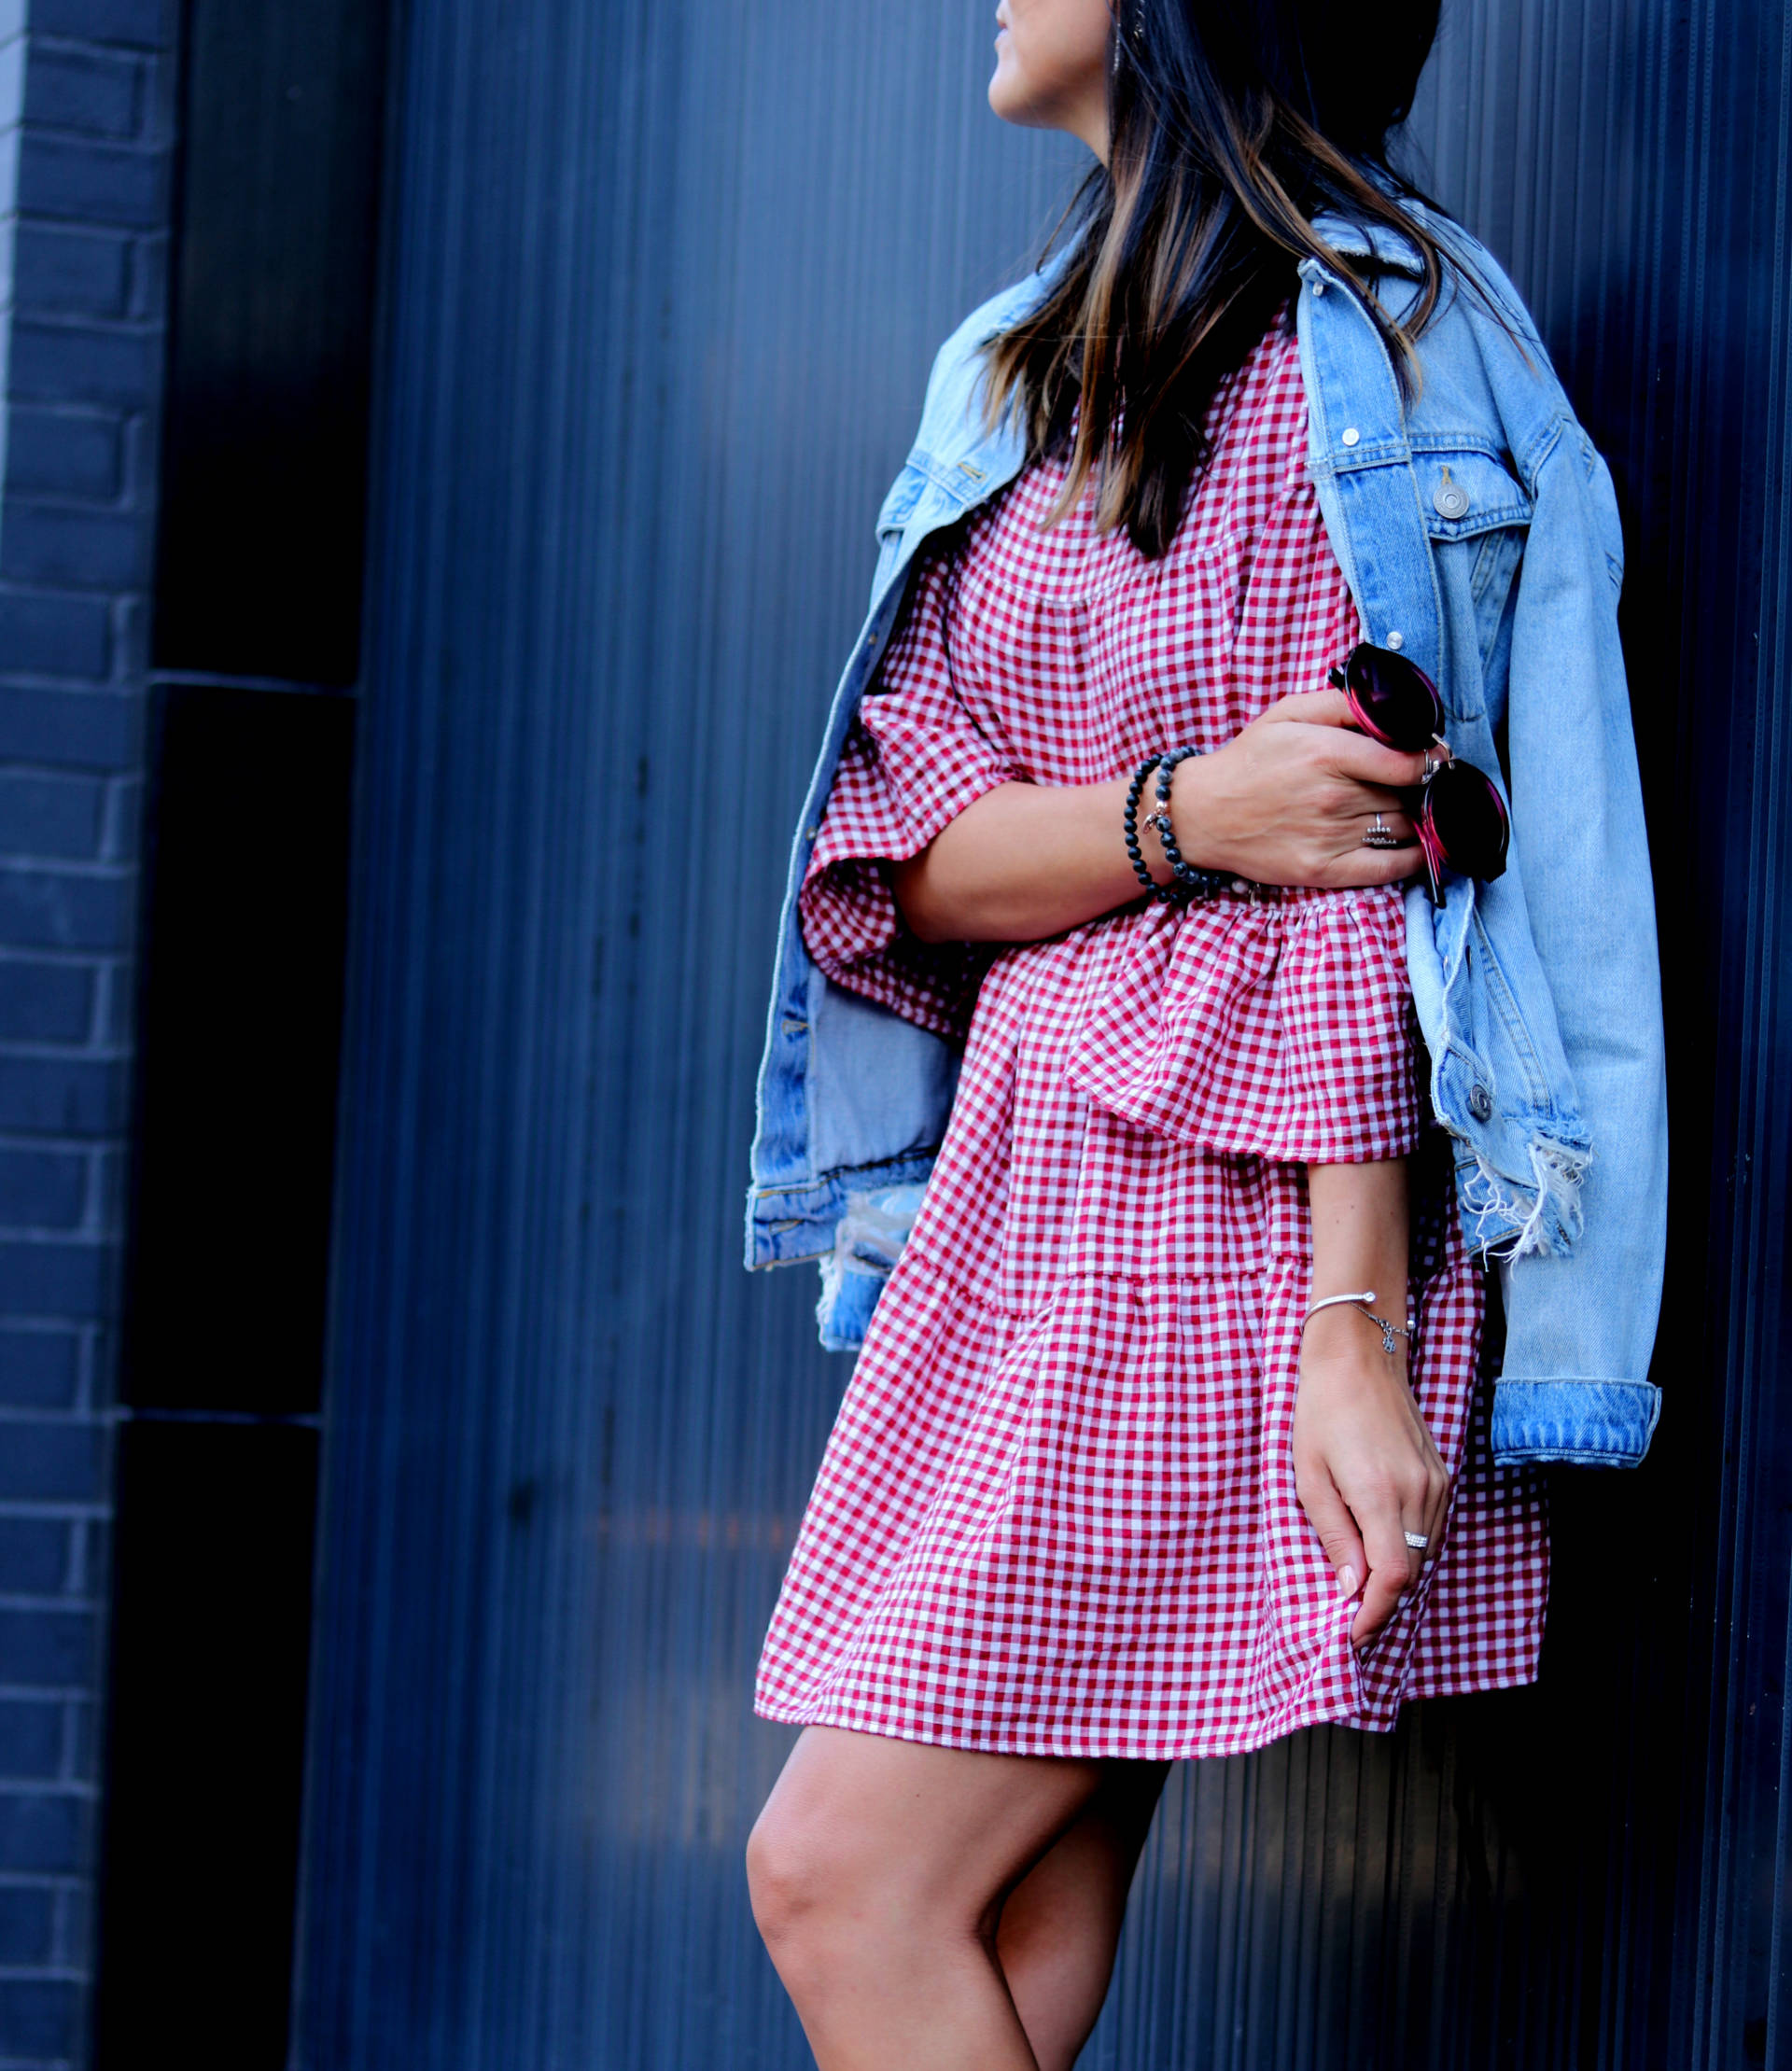 LAFOTKA HENRI BENDEL BAG GINGHAM DRESS